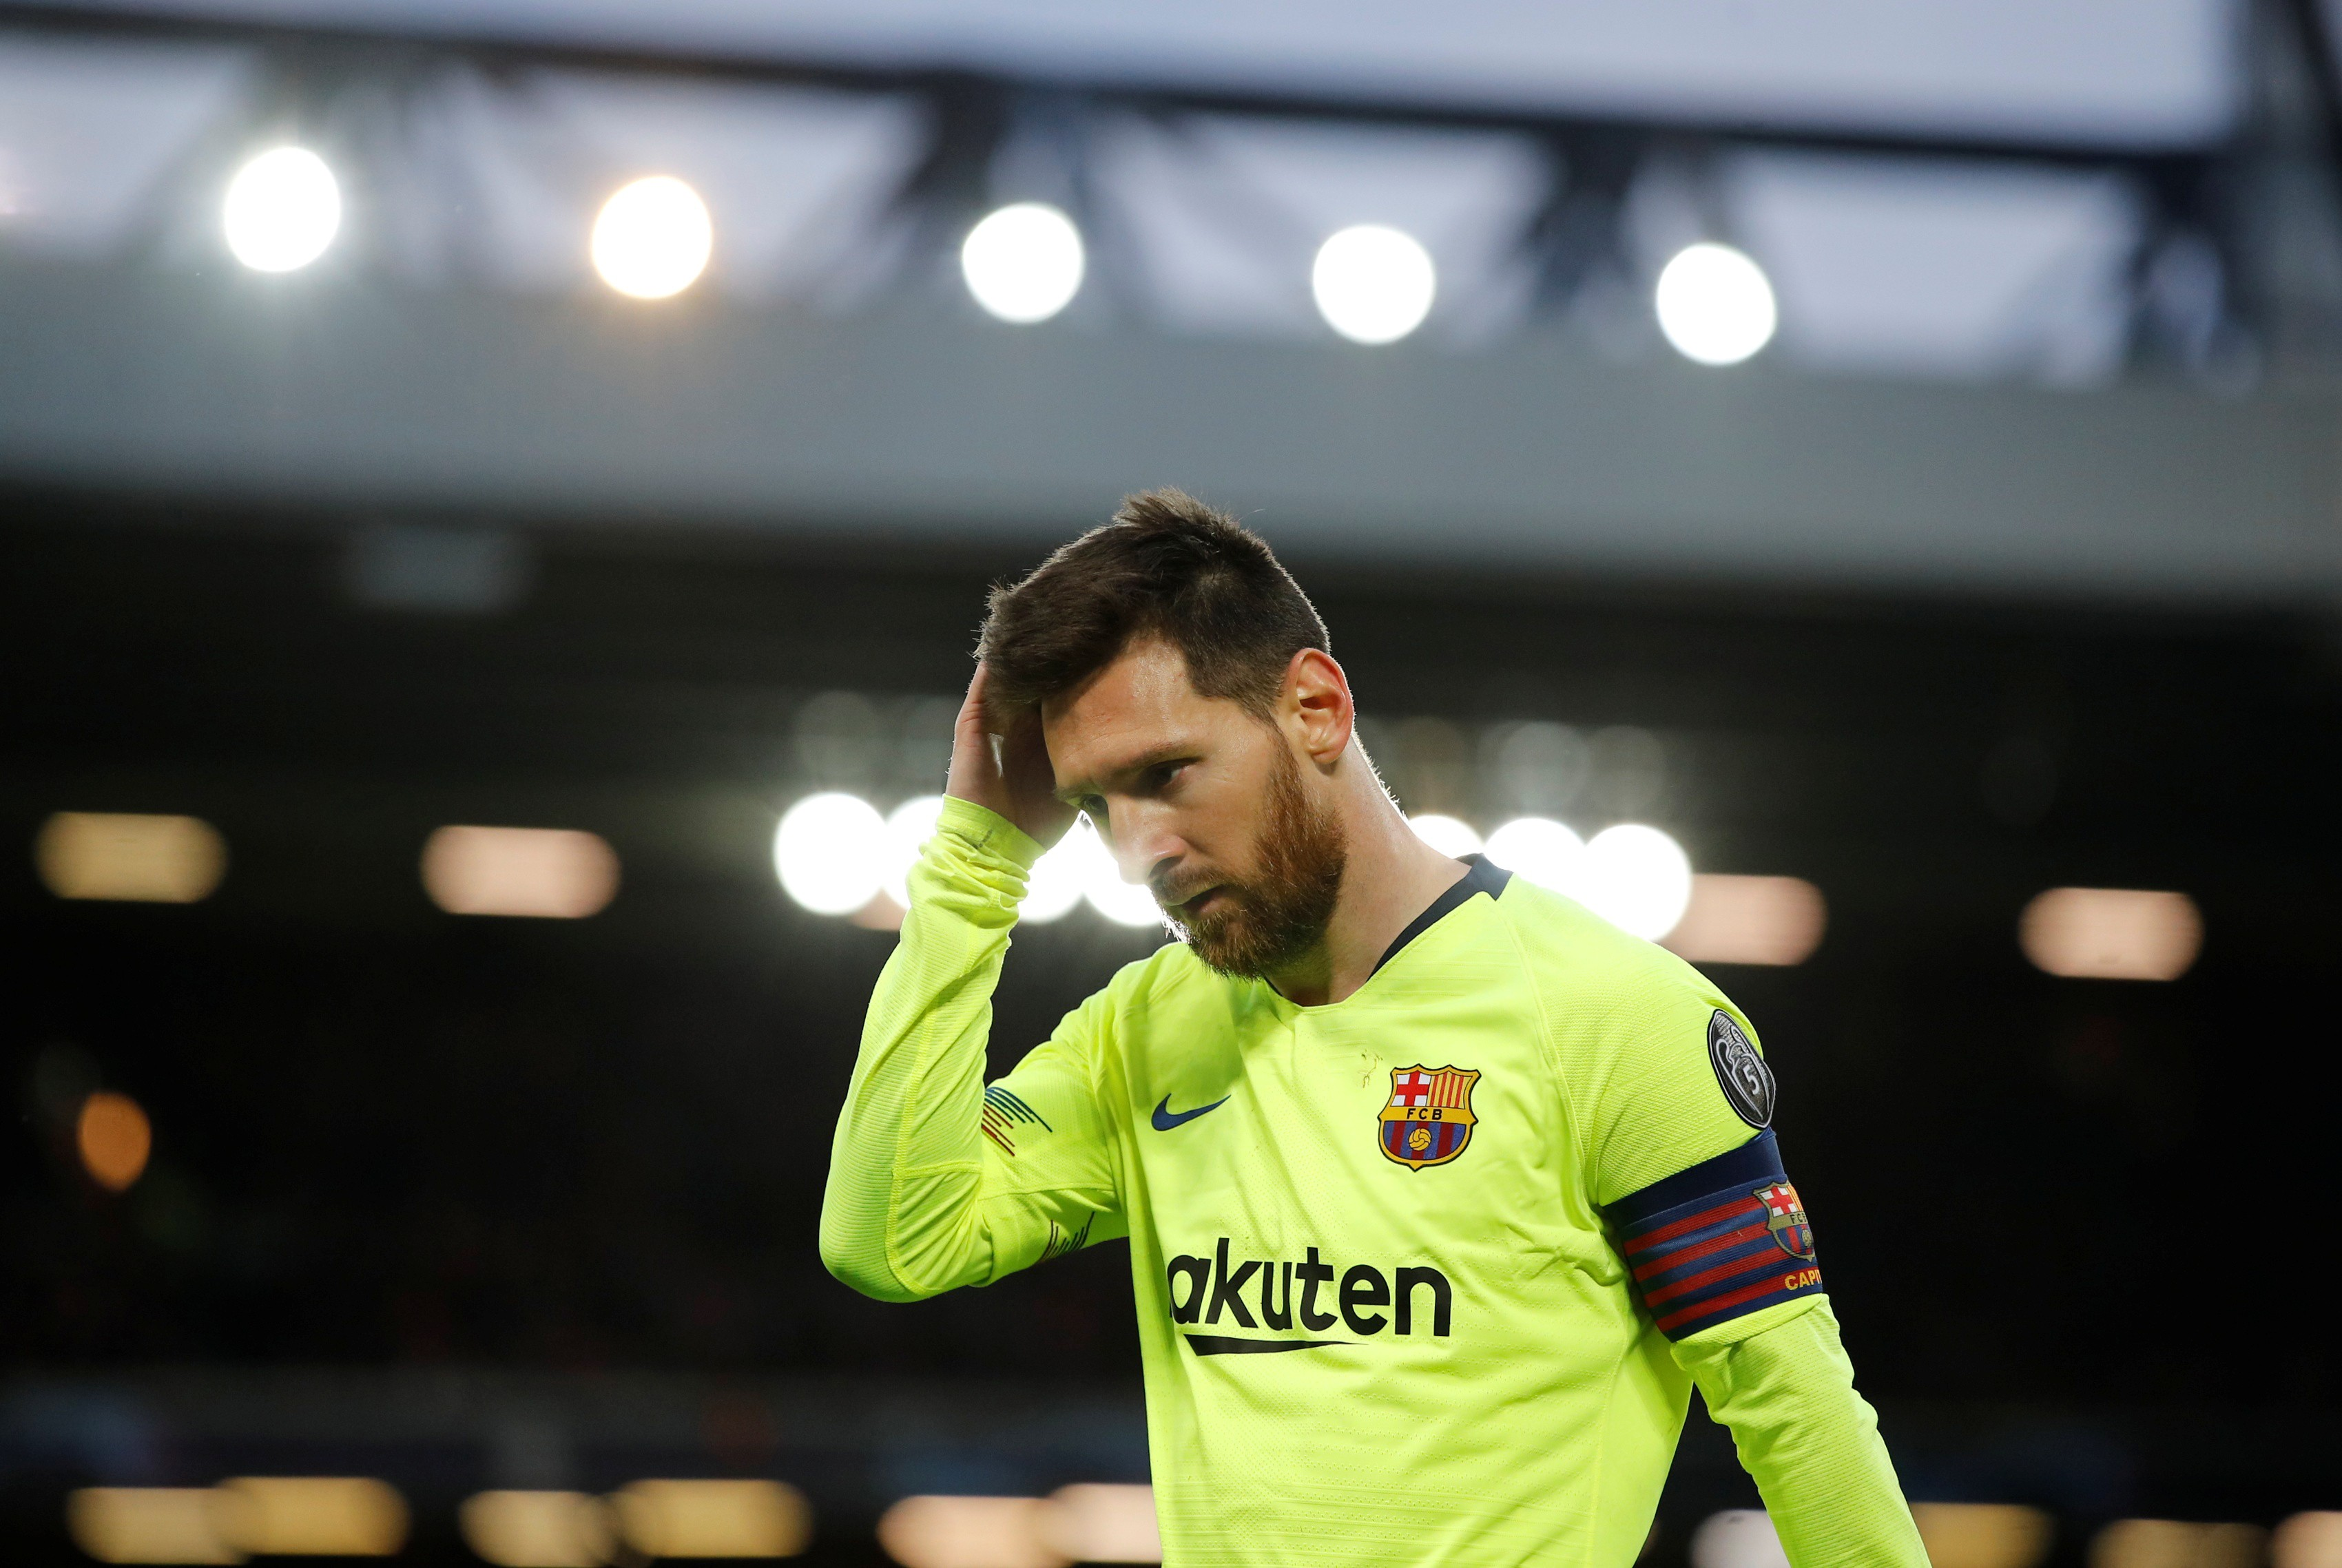 a1530f1d745 Messi s miserable night gets worse after team bus leaves without him ...